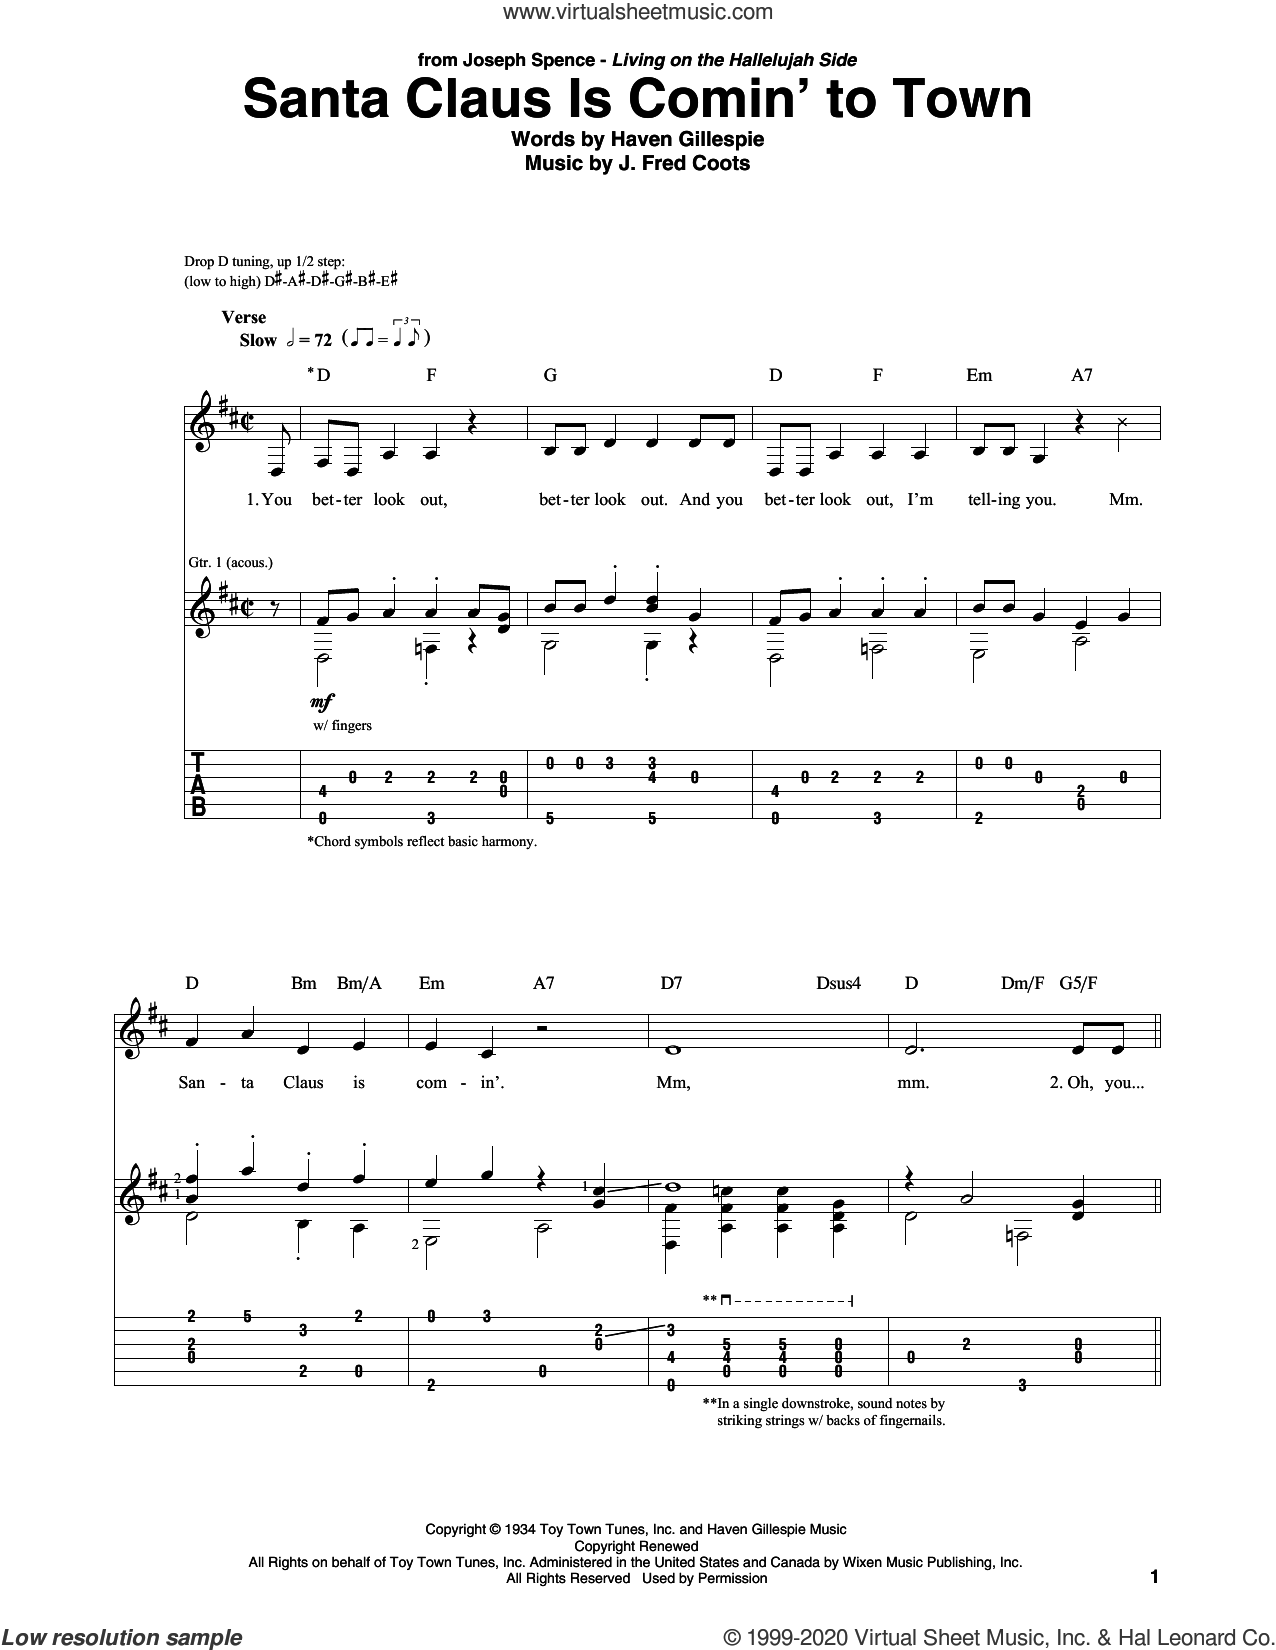 Santa Claus Is Comin' To Town sheet music for guitar solo by J. Fred Coots and Haven Gillespie, intermediate skill level